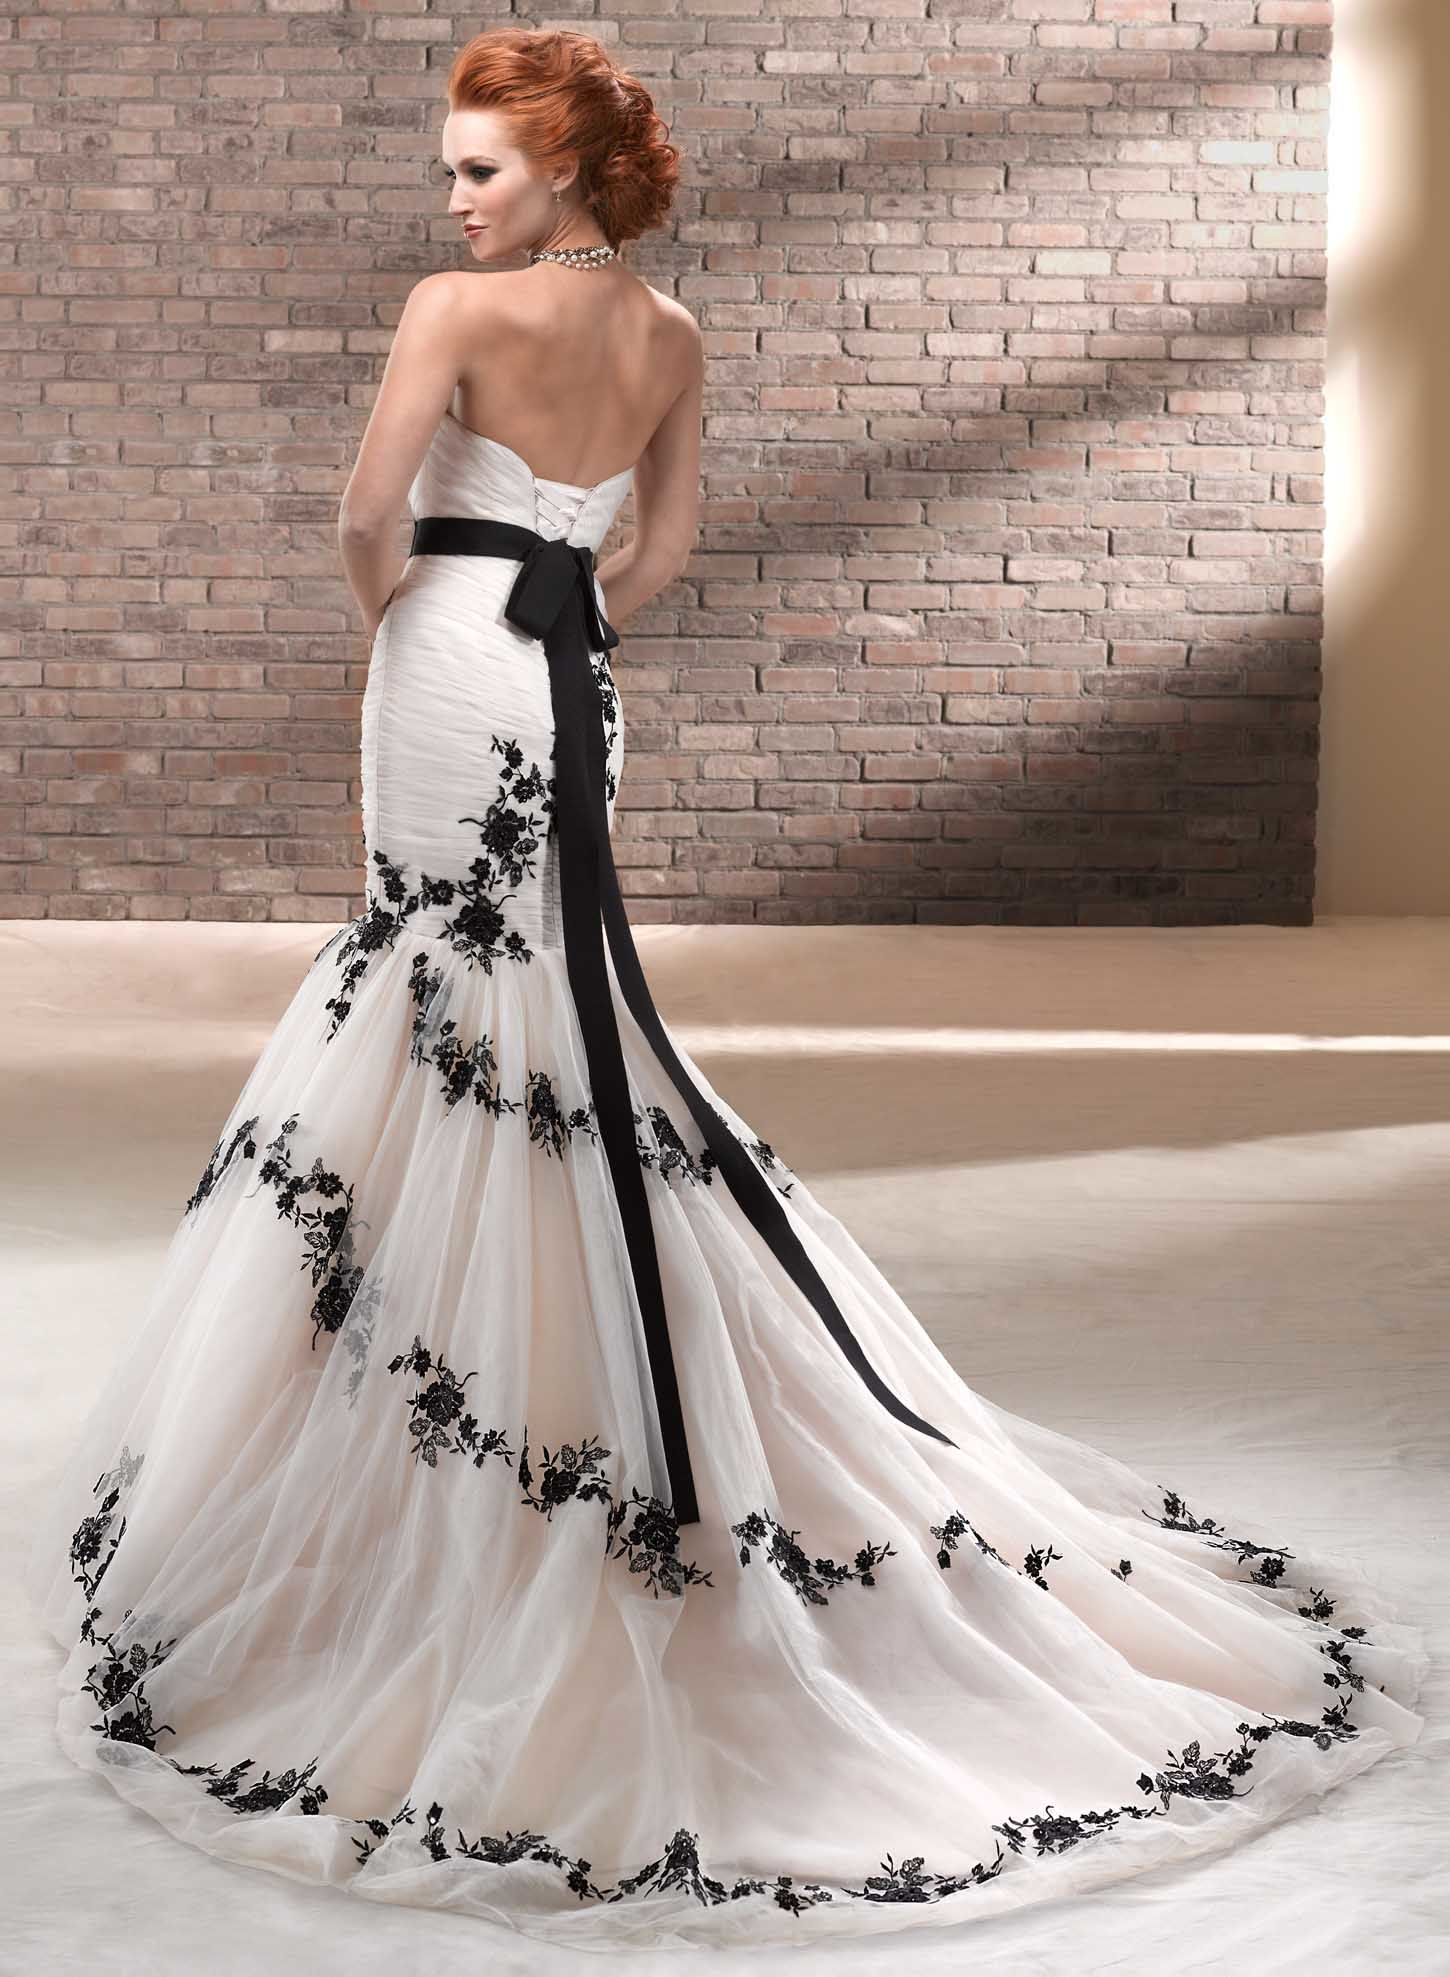 black and white corset wedding dress with sash